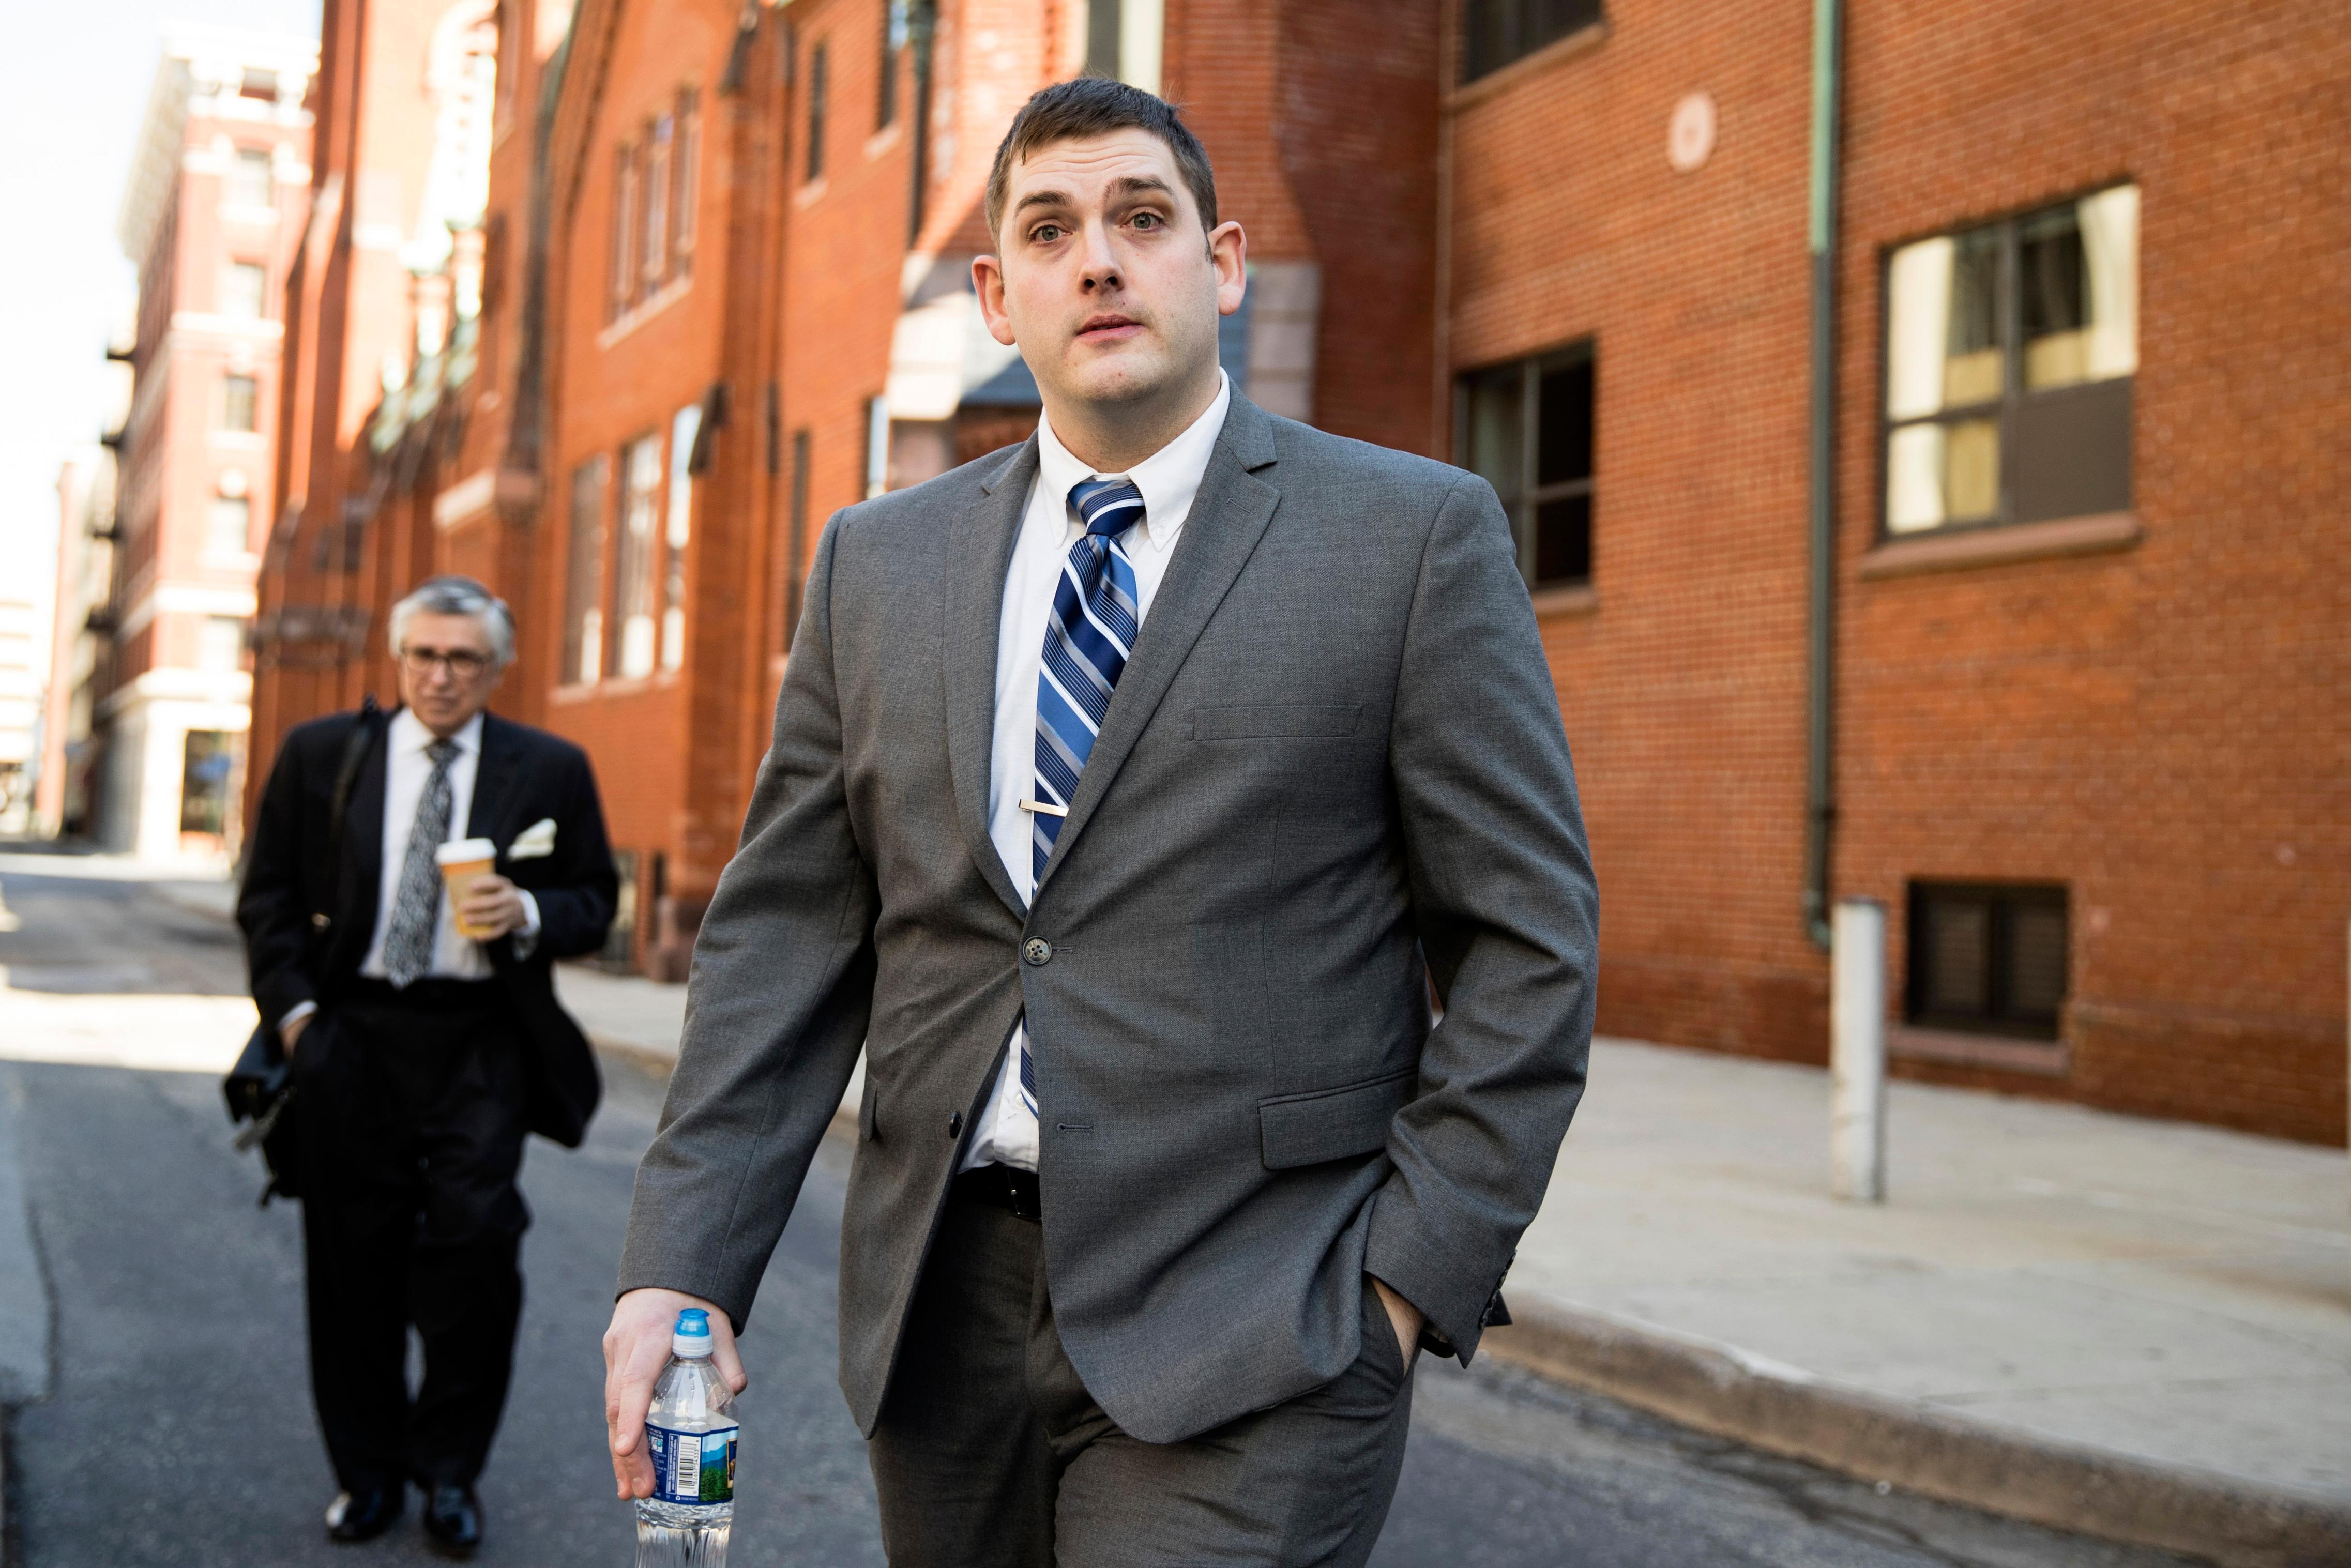 In this March 12, 2019 file photo, former East Pittsburgh police officer Michael Rosfeld, charged with homicide in the shooting death of Antwon Rose II, walks to the Dauphin County Courthouse in Harrisburg, Pa.{ } (AP Photo/Matt Rourke)